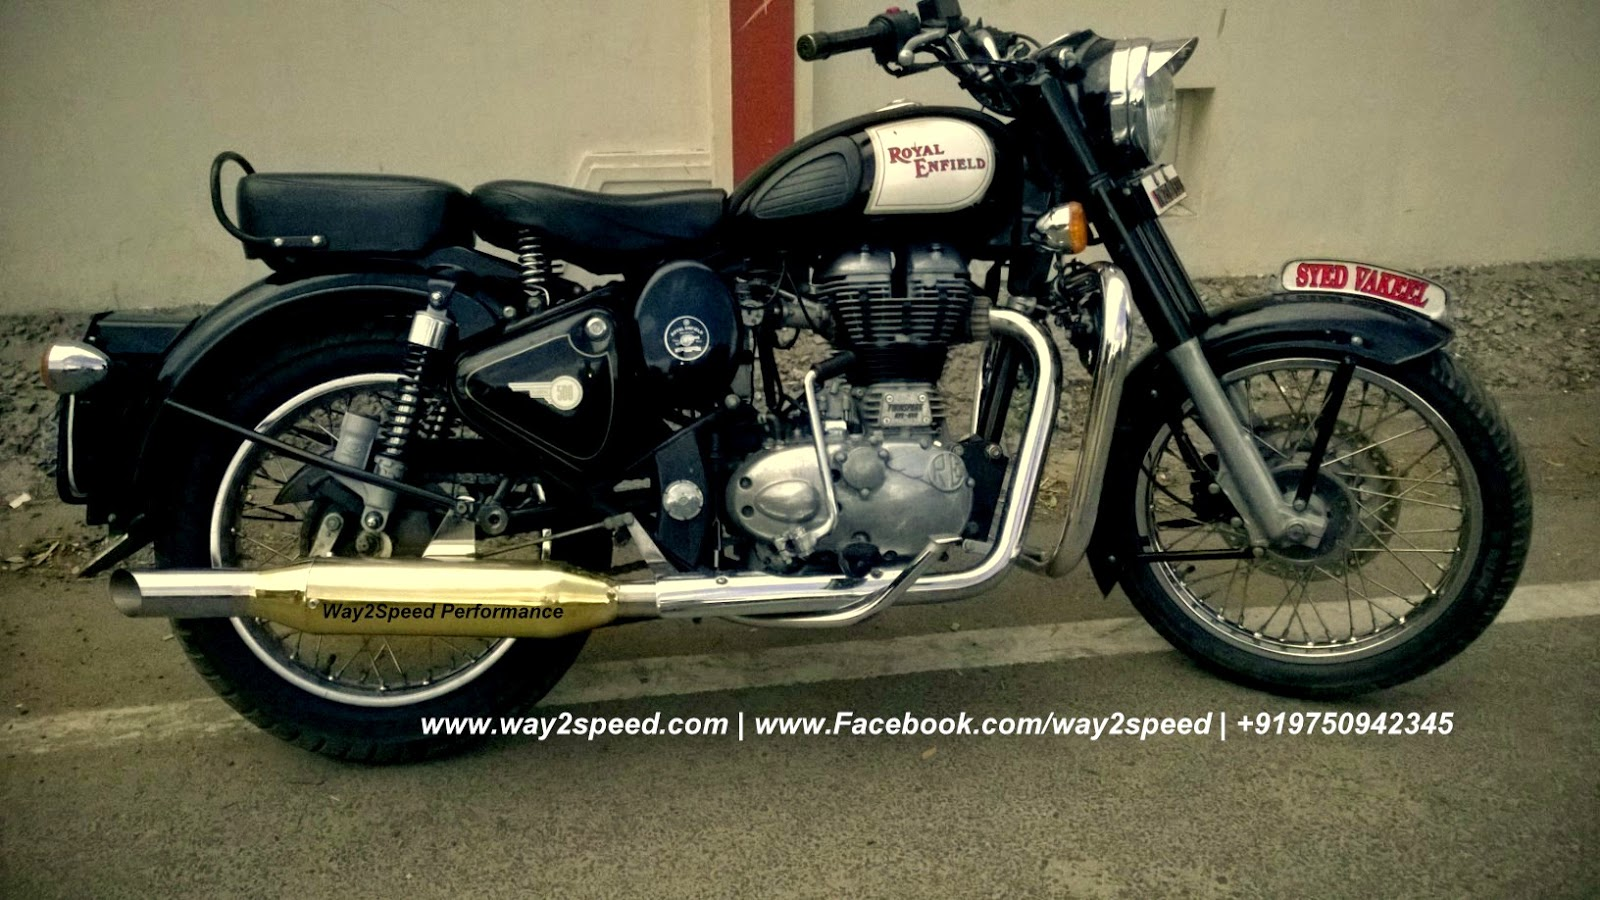 Way2speed Royal Enfield Rifle Exhaust | Royal Enfield Brass Accessories | Royal Enfield brass silencer | Royal Enfield silencer | Royal Enfield exhaust, Royal Enfield muffler |  way2speed performance